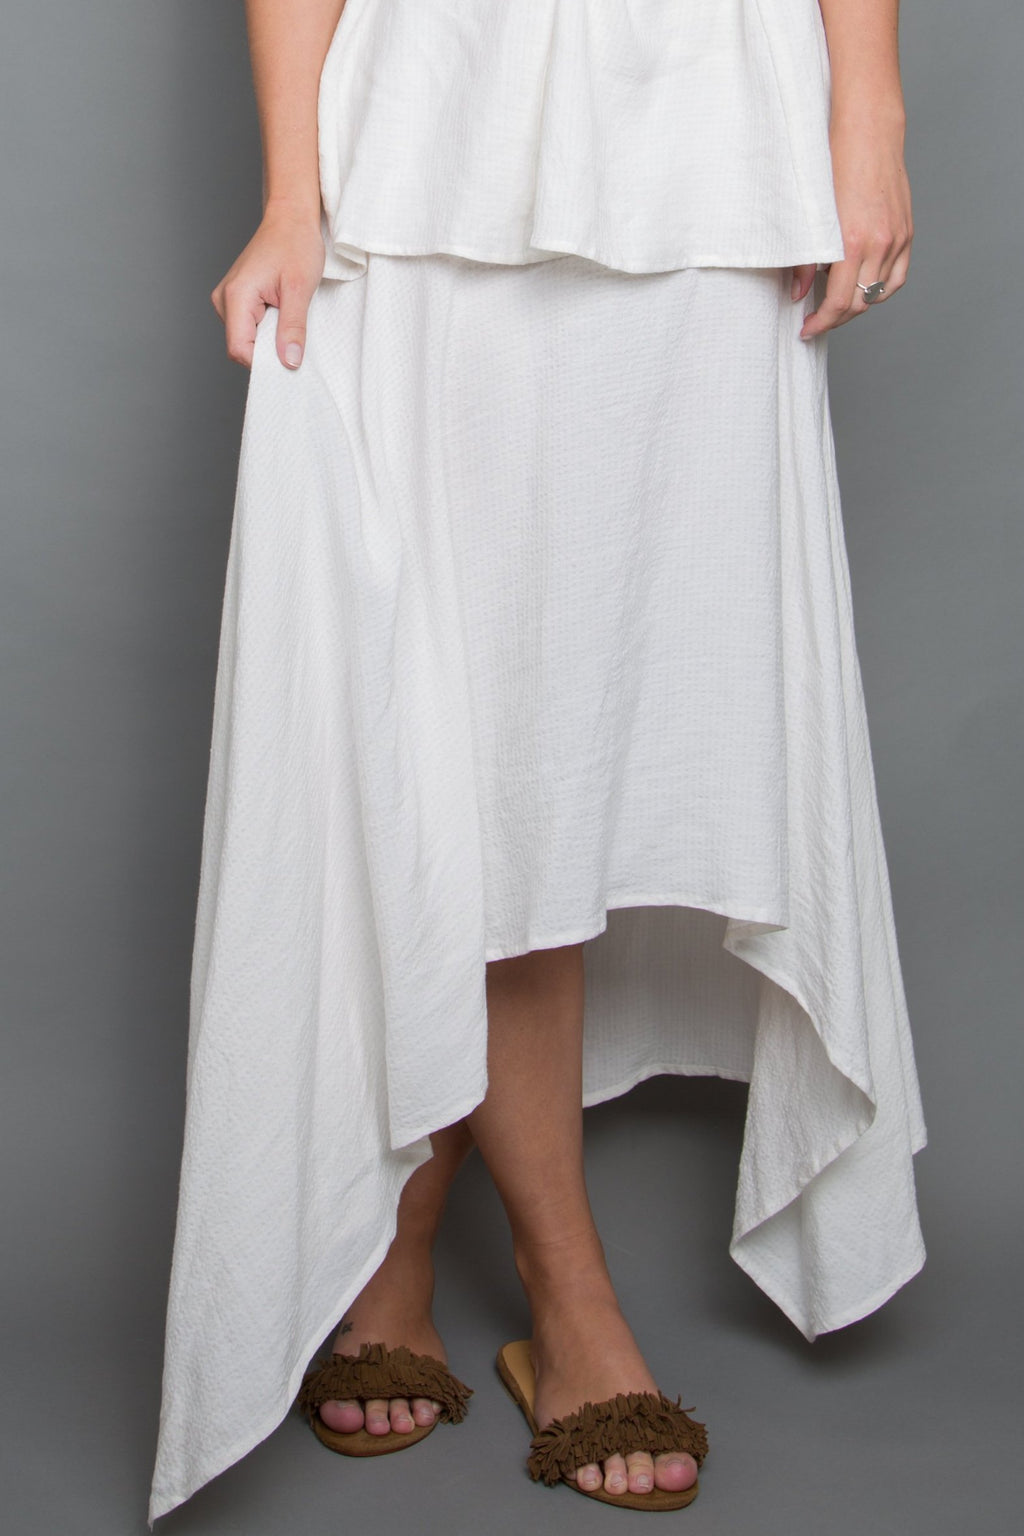 On Time Skirt in White Gardenia